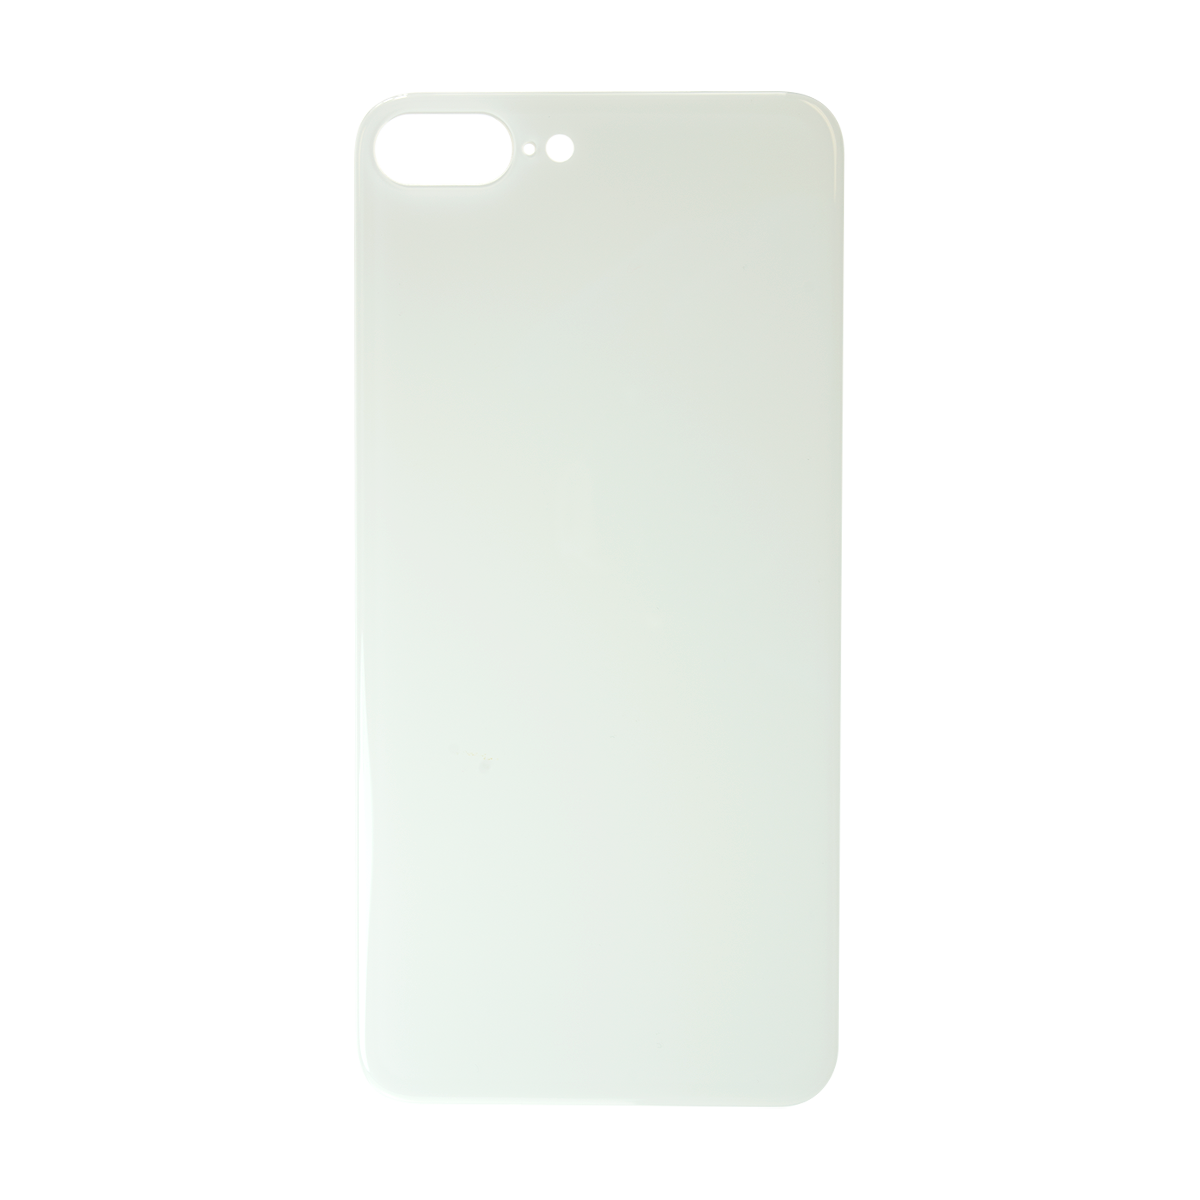 iPhone_8_Plus_Rear_Back_Glass_with_Big_Camera_Hole_White_SBDOS7HQNIOH.png